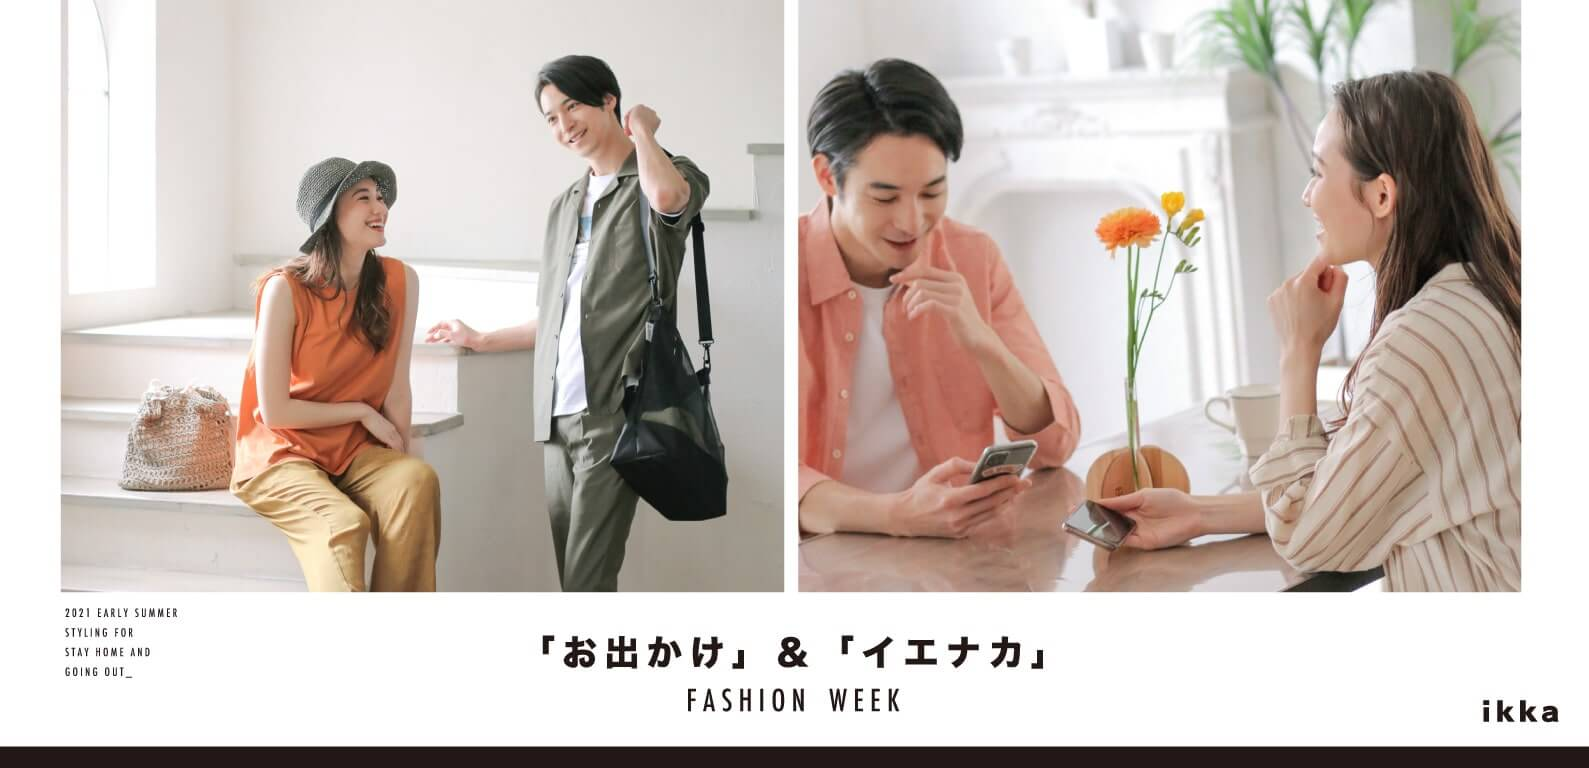 TDC stay home/going out styling